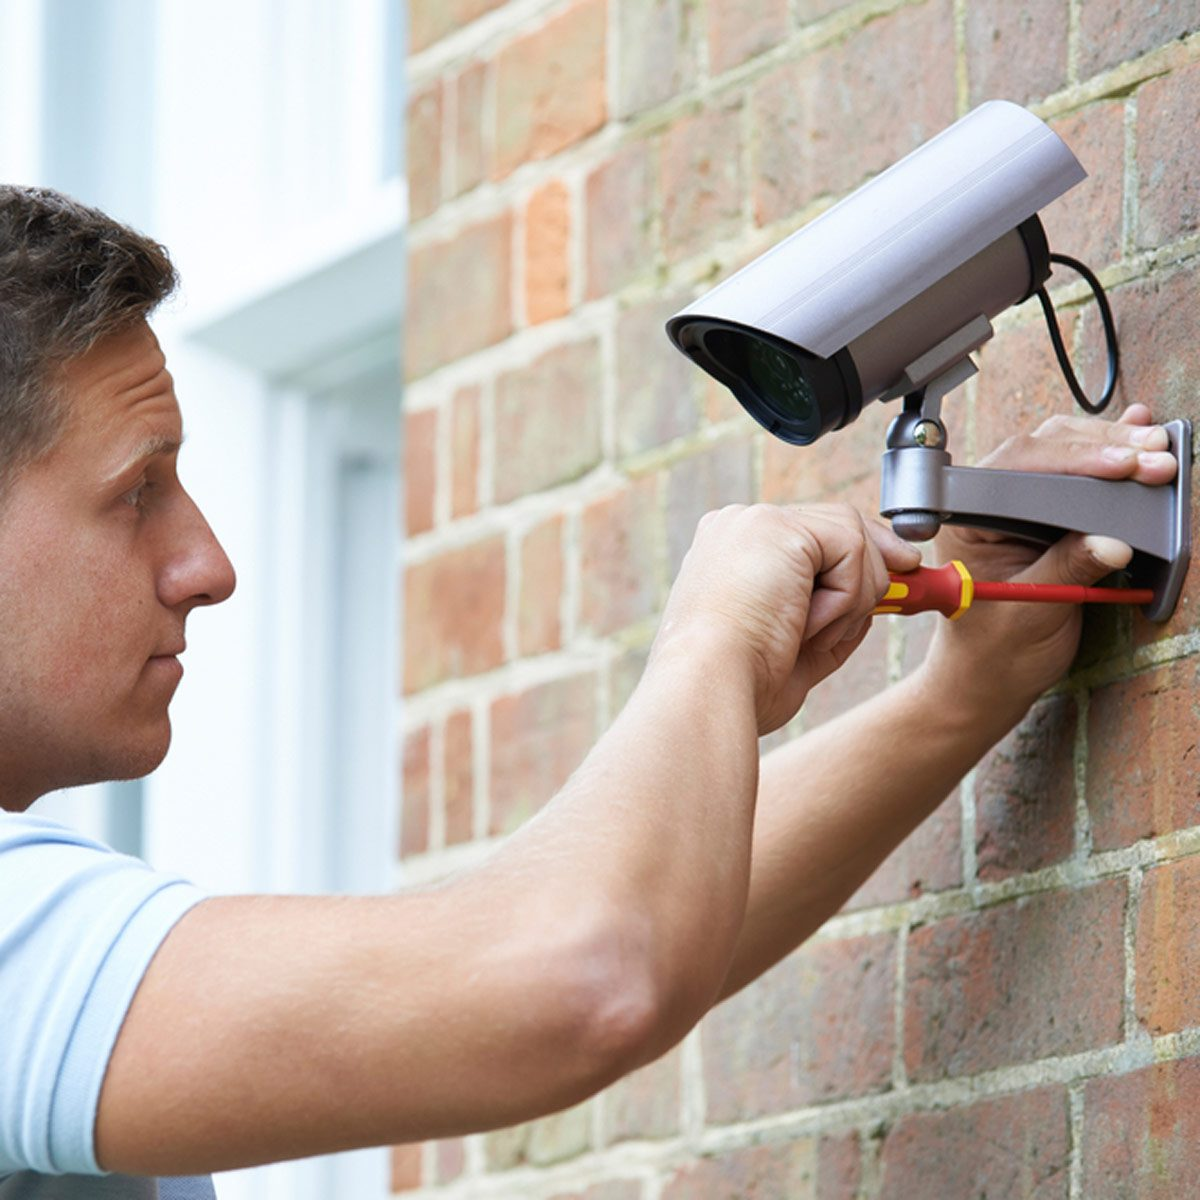 The Best Places to Install Your Indoor Wi-Fi Security Camera